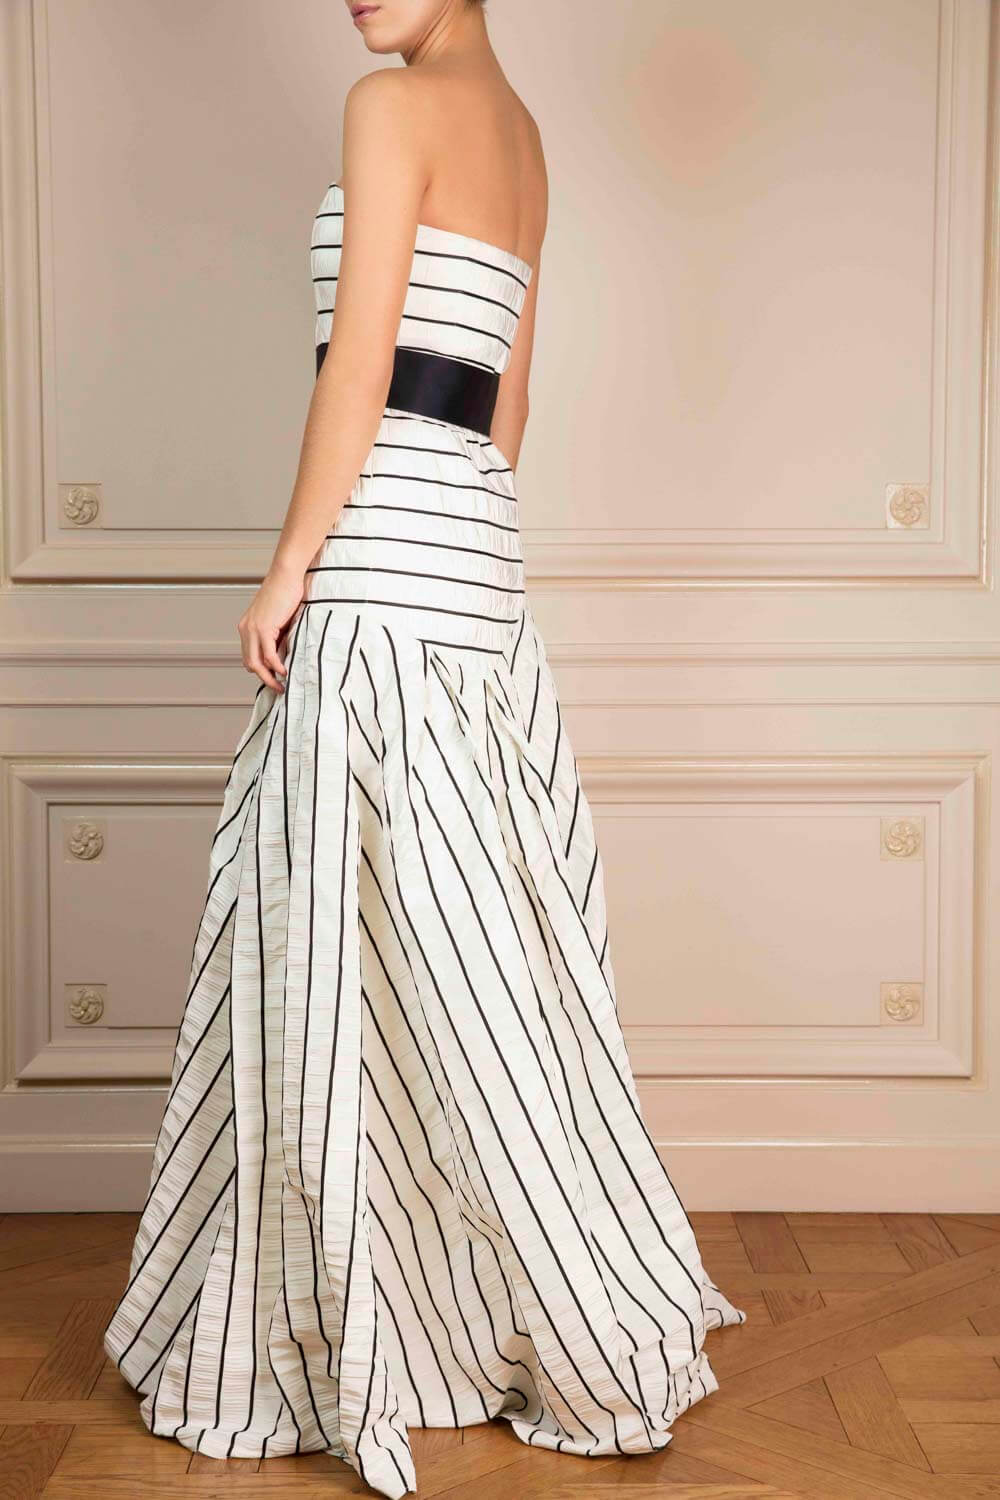 Full-length bustier dress in pinstriped crinkled silk, with an asymmetric bias-cut skirt